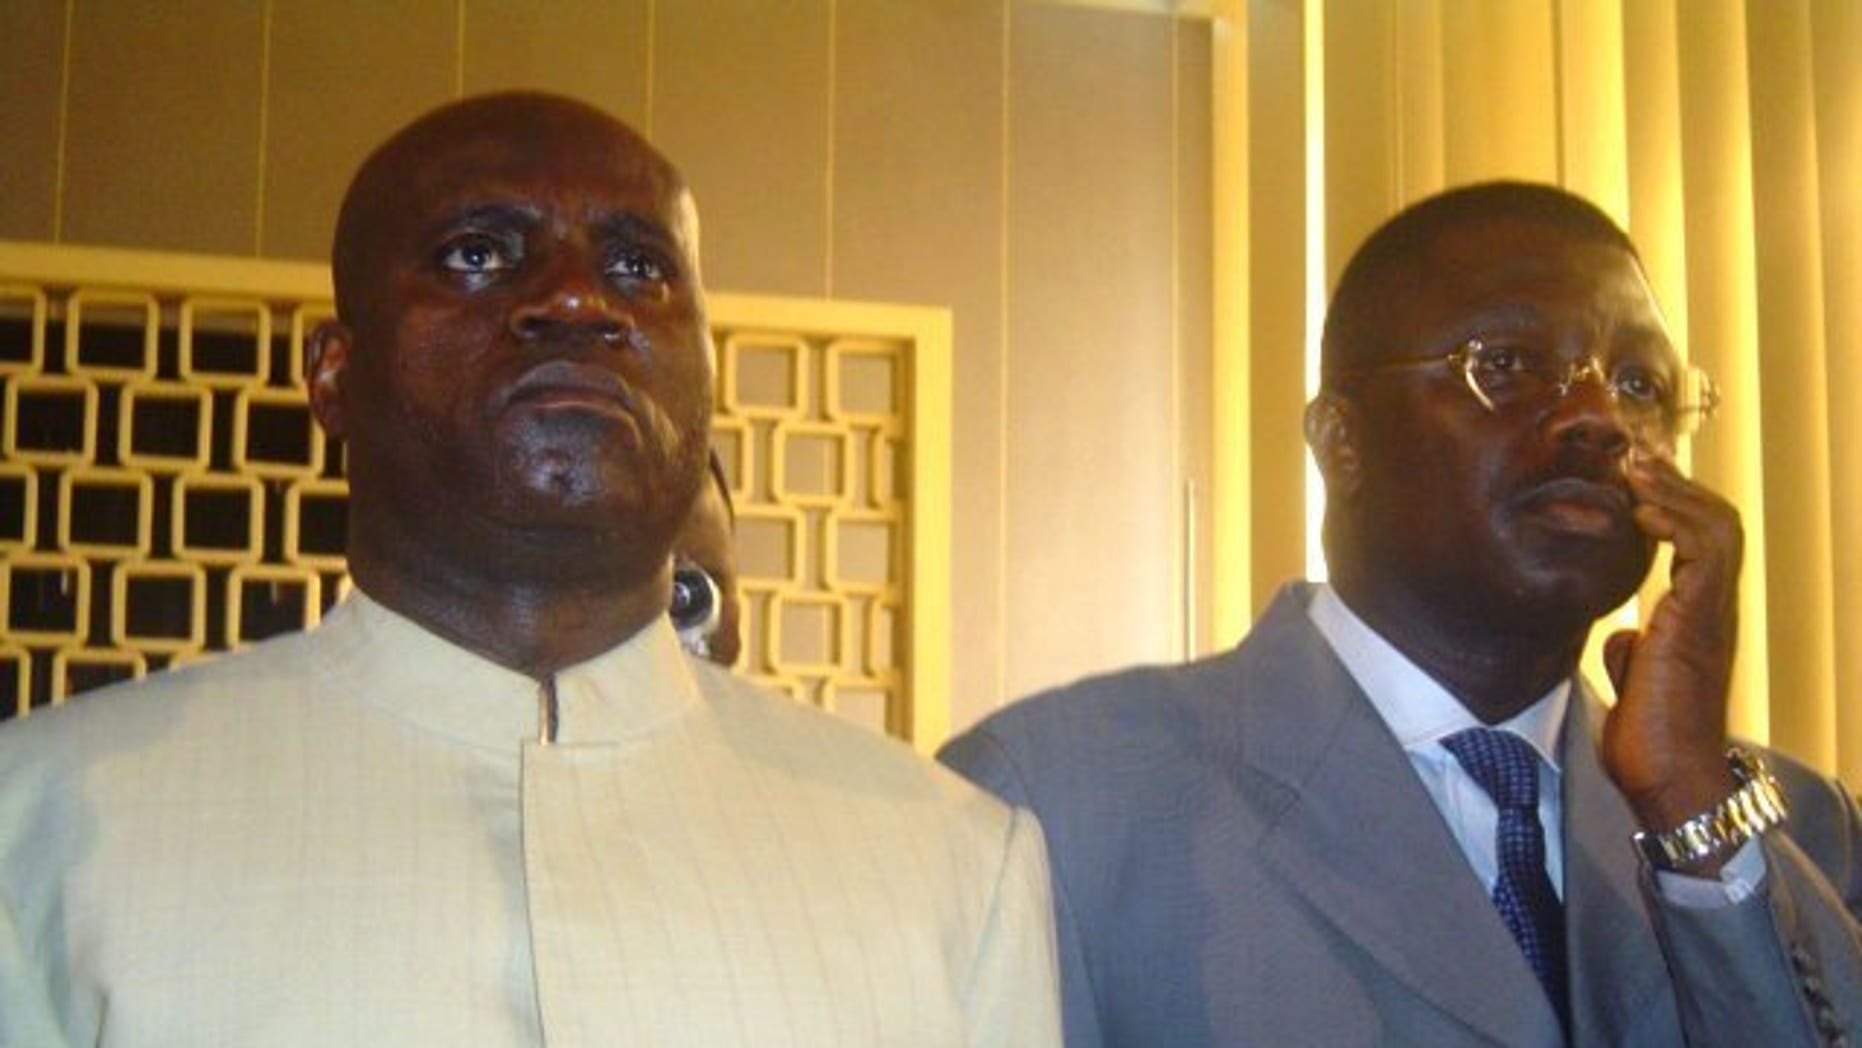 Norbert Dabira (L) listens to the verdict of a case on August 17, 2005 in Brazzaville. The Congolese general, wanted in connection with the 1999 disappearance of 350 refugees, was arrested in France on Thursday and charged with crimes against humanity, a court source said.